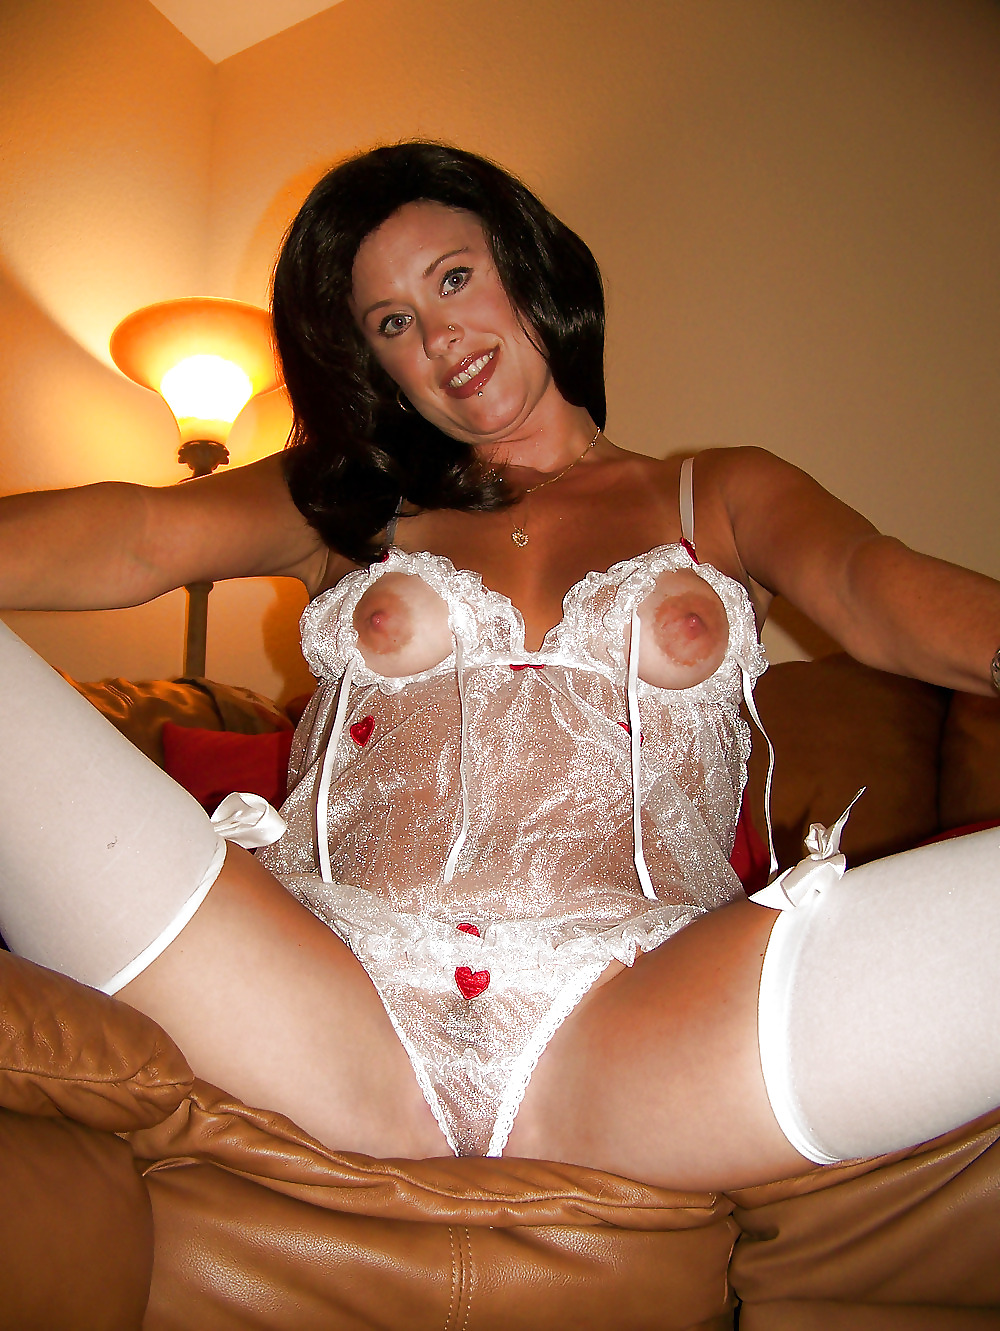 Stockings and lingerie